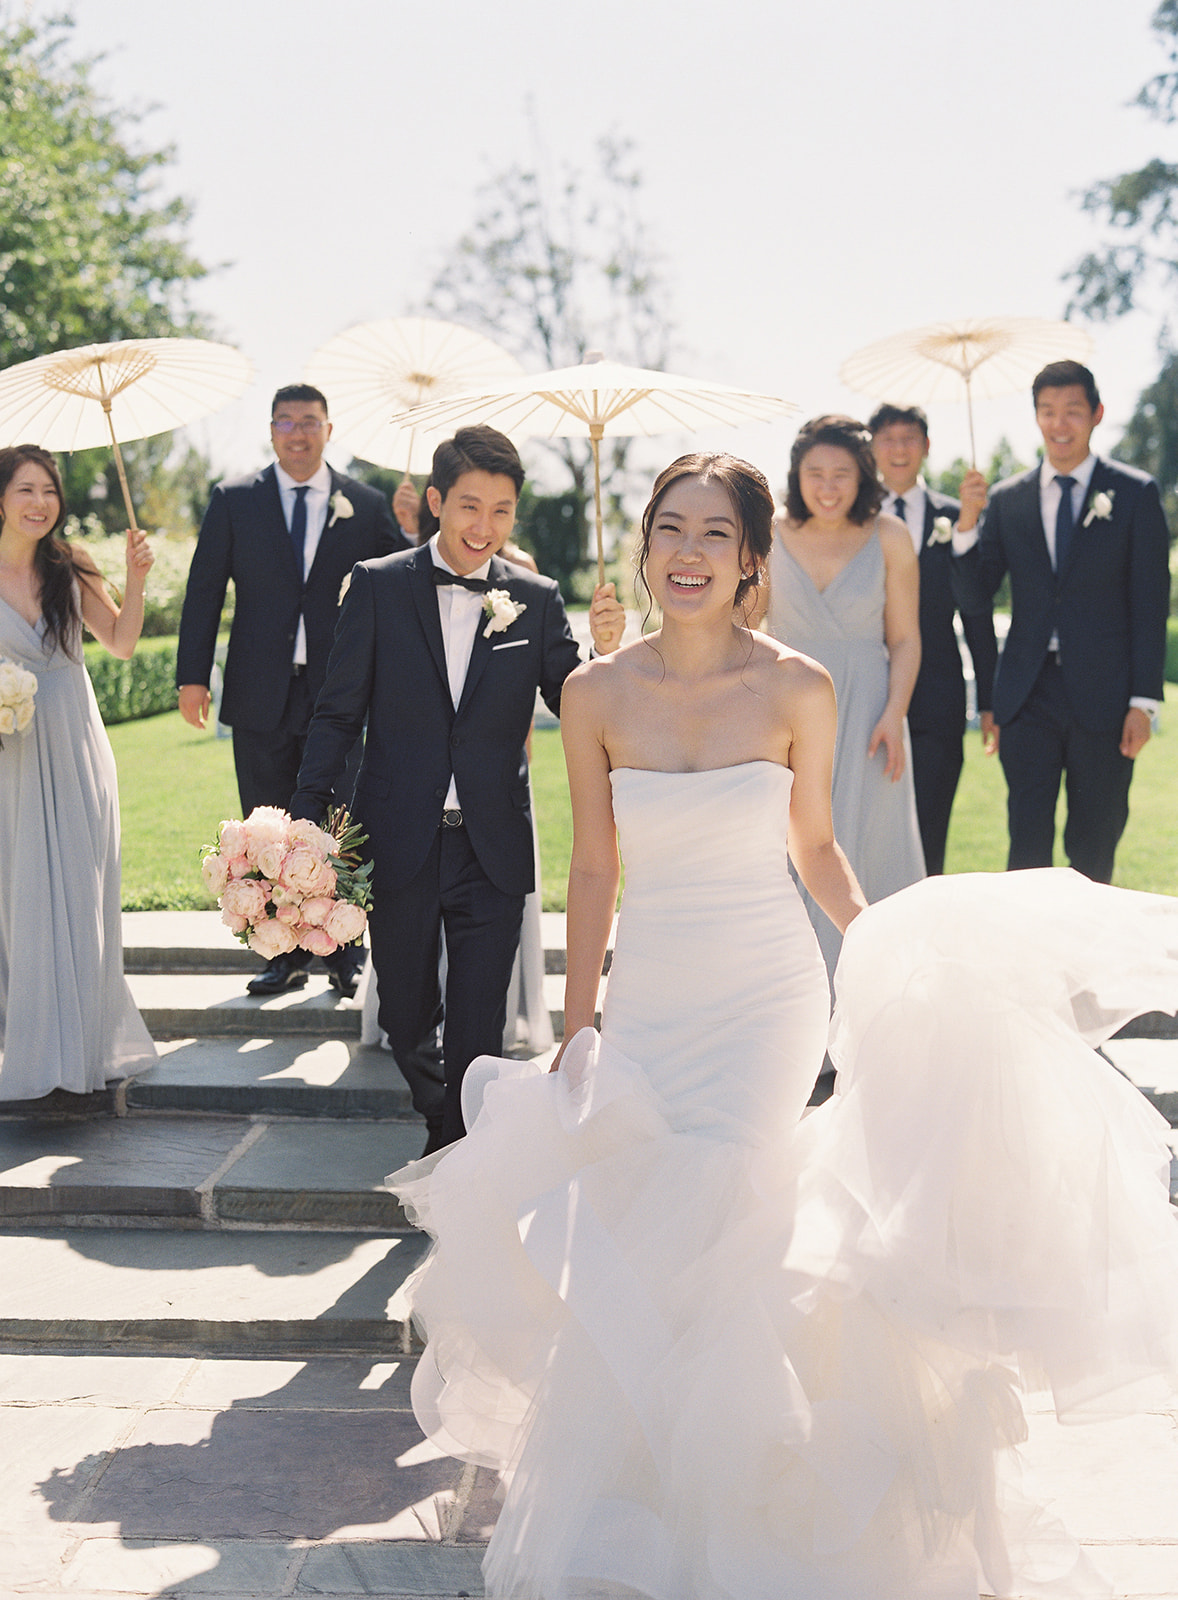 Bridal party holding paper umbrellas walking after bride